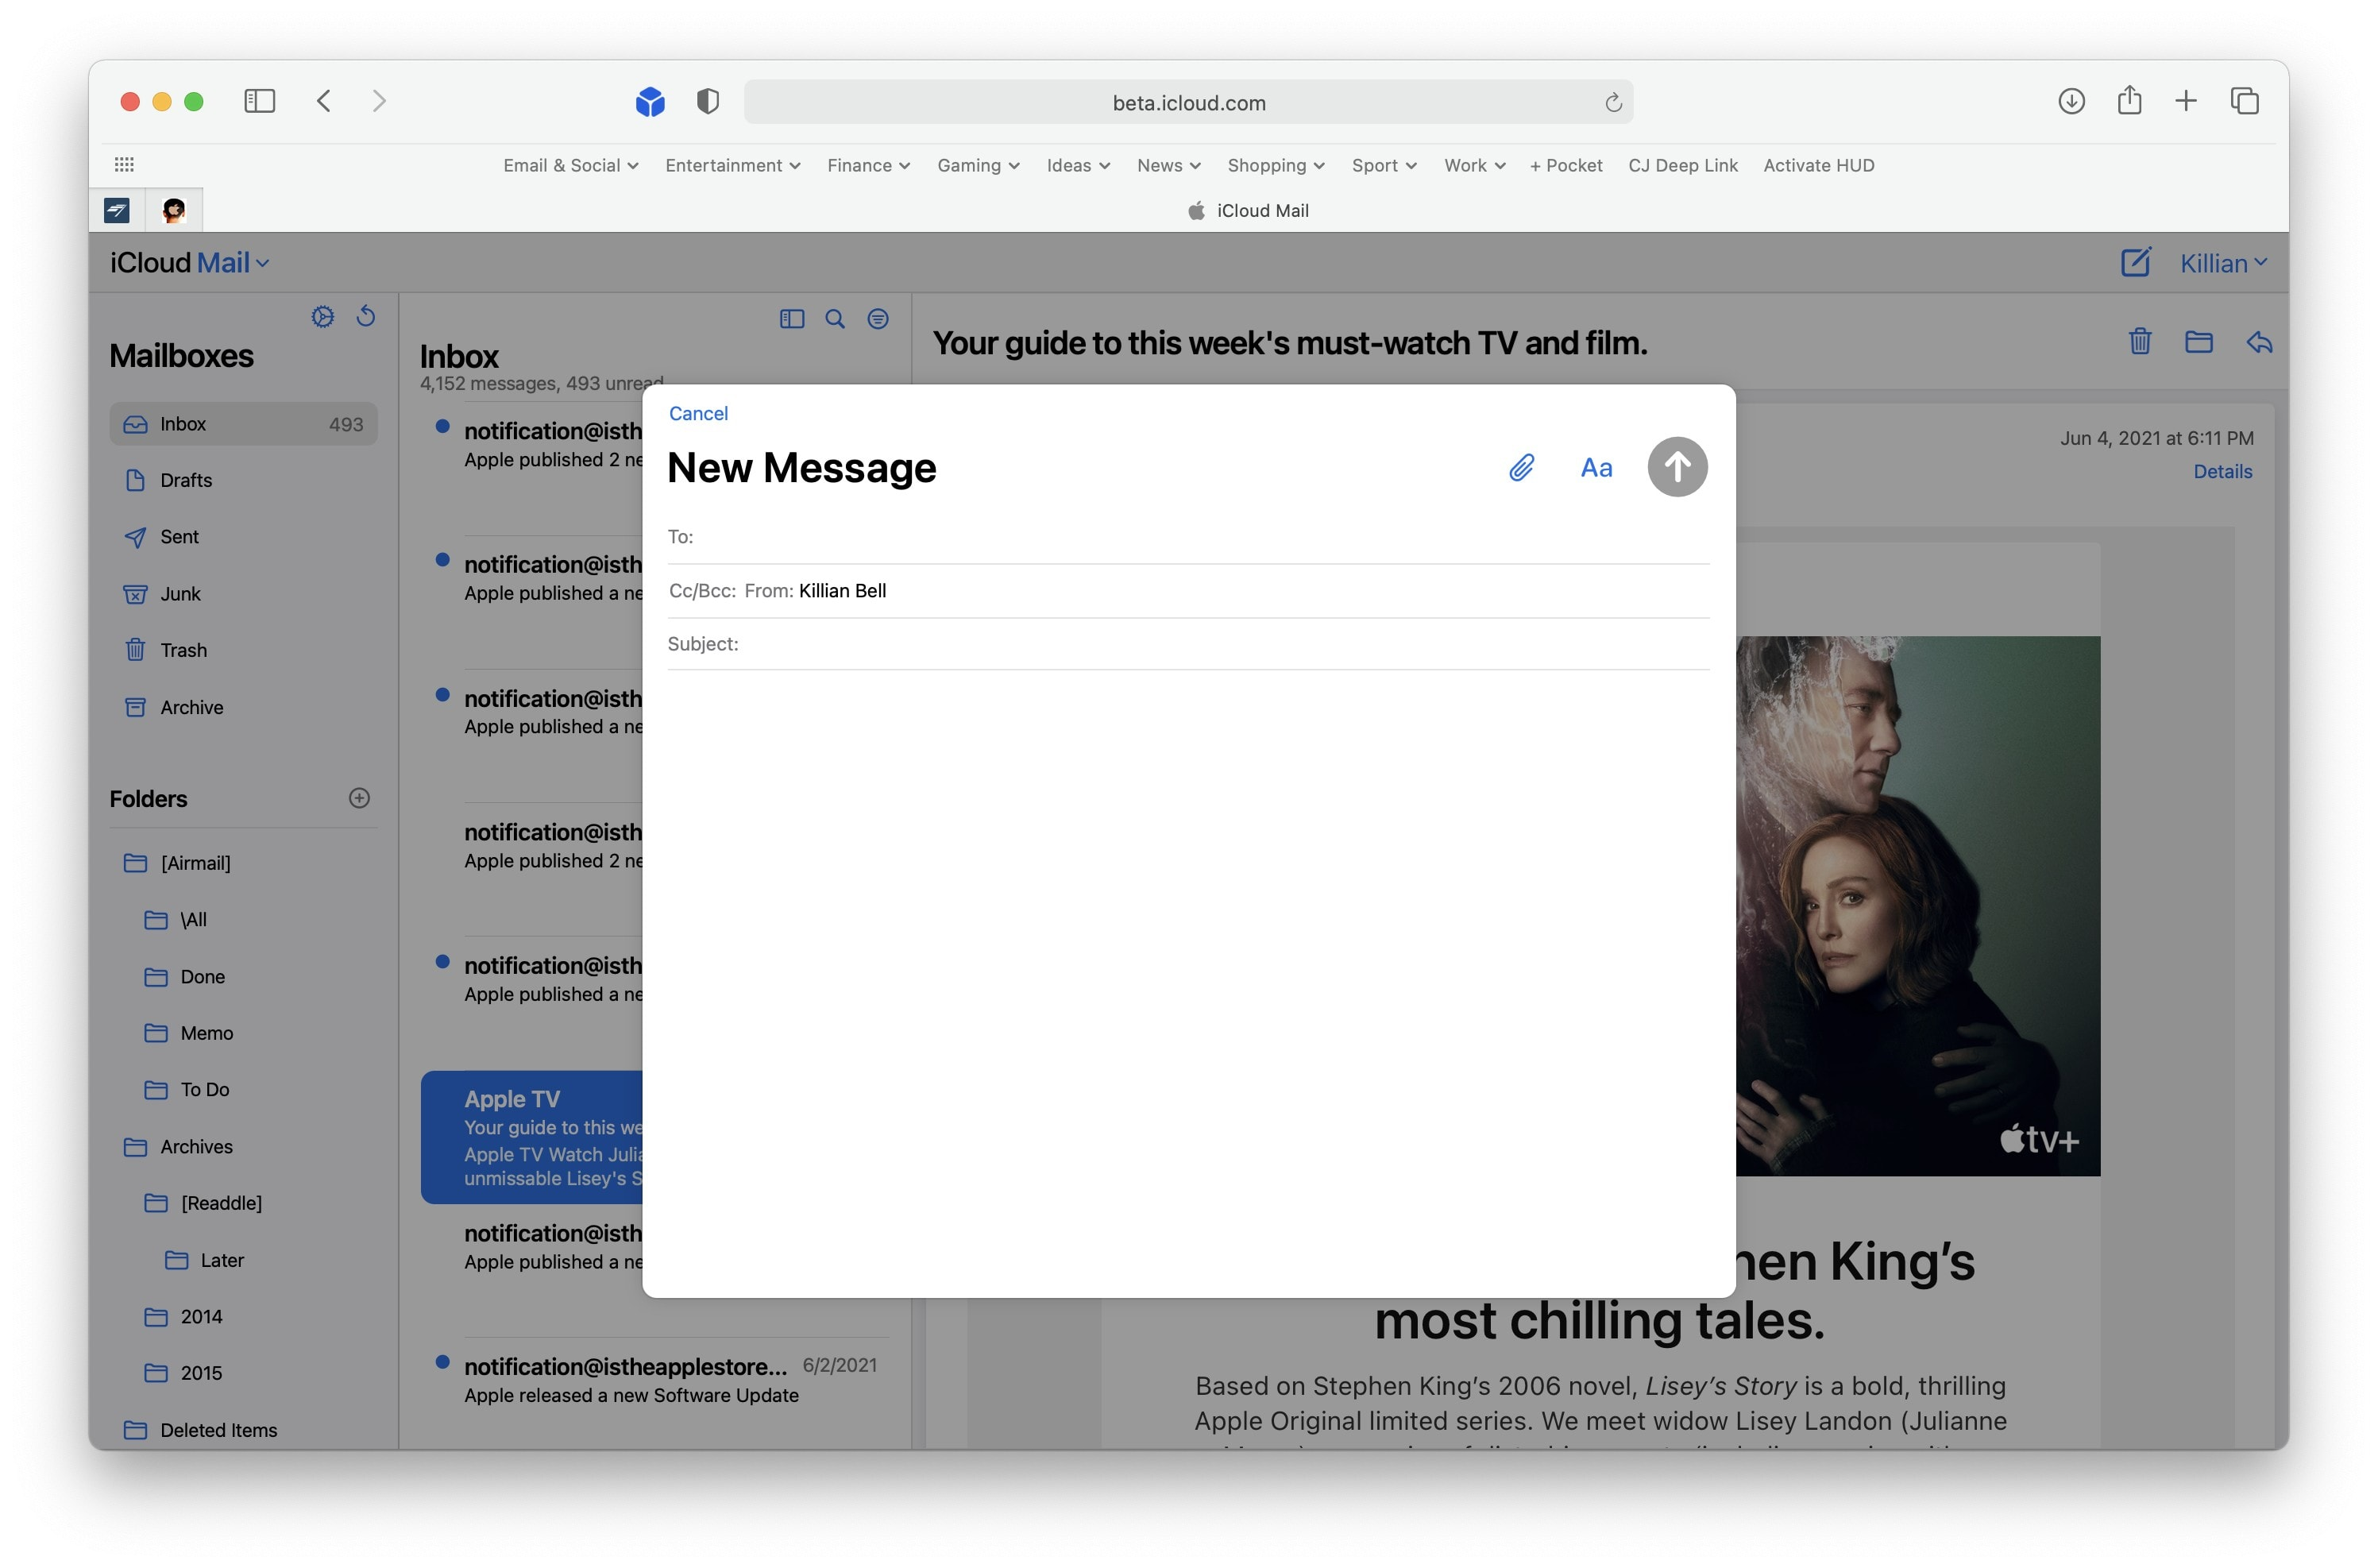 iCloud Mail gets a new look